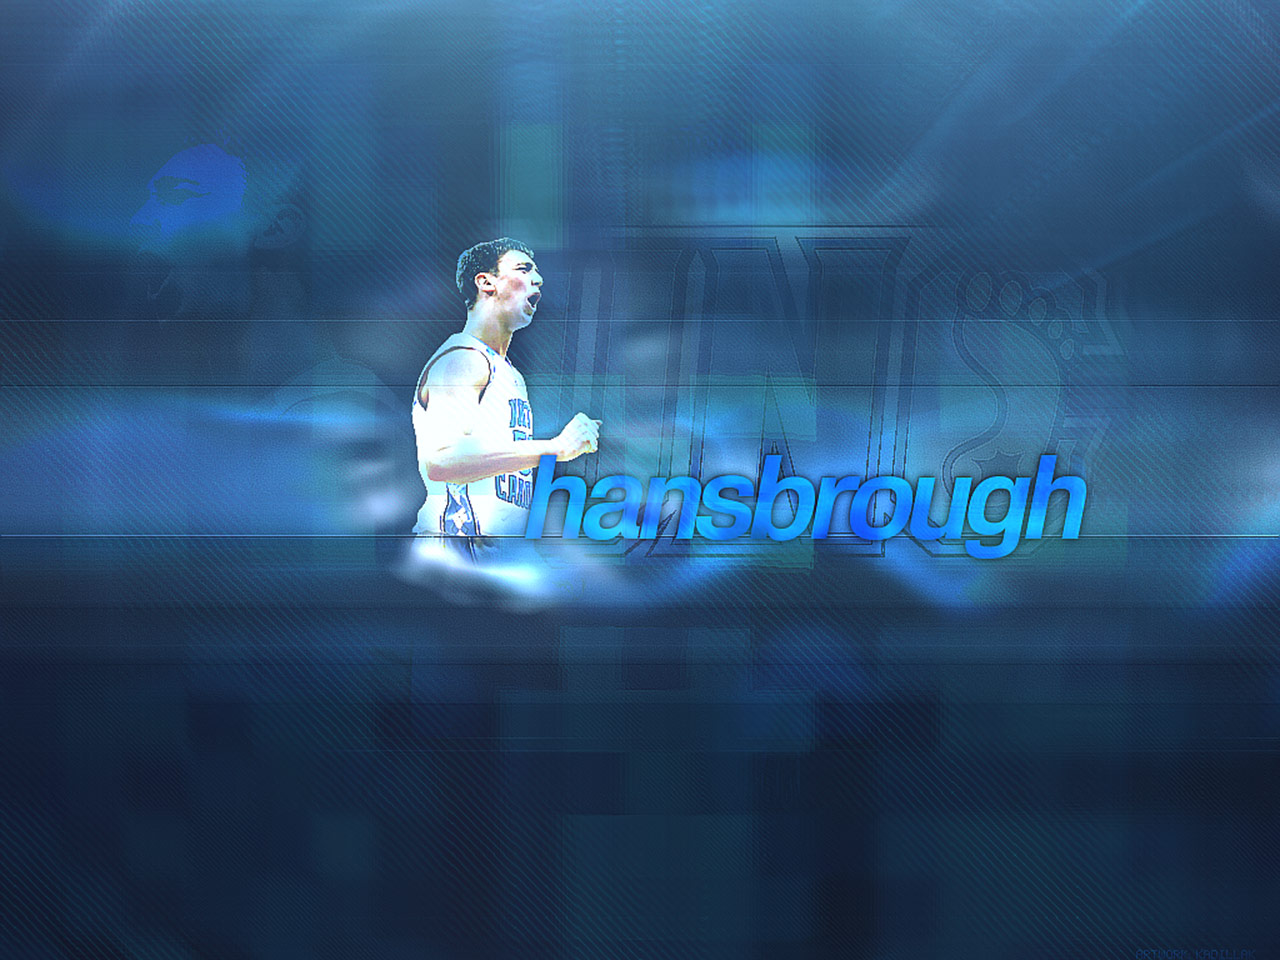 Tyler Hansbrough North Carolina